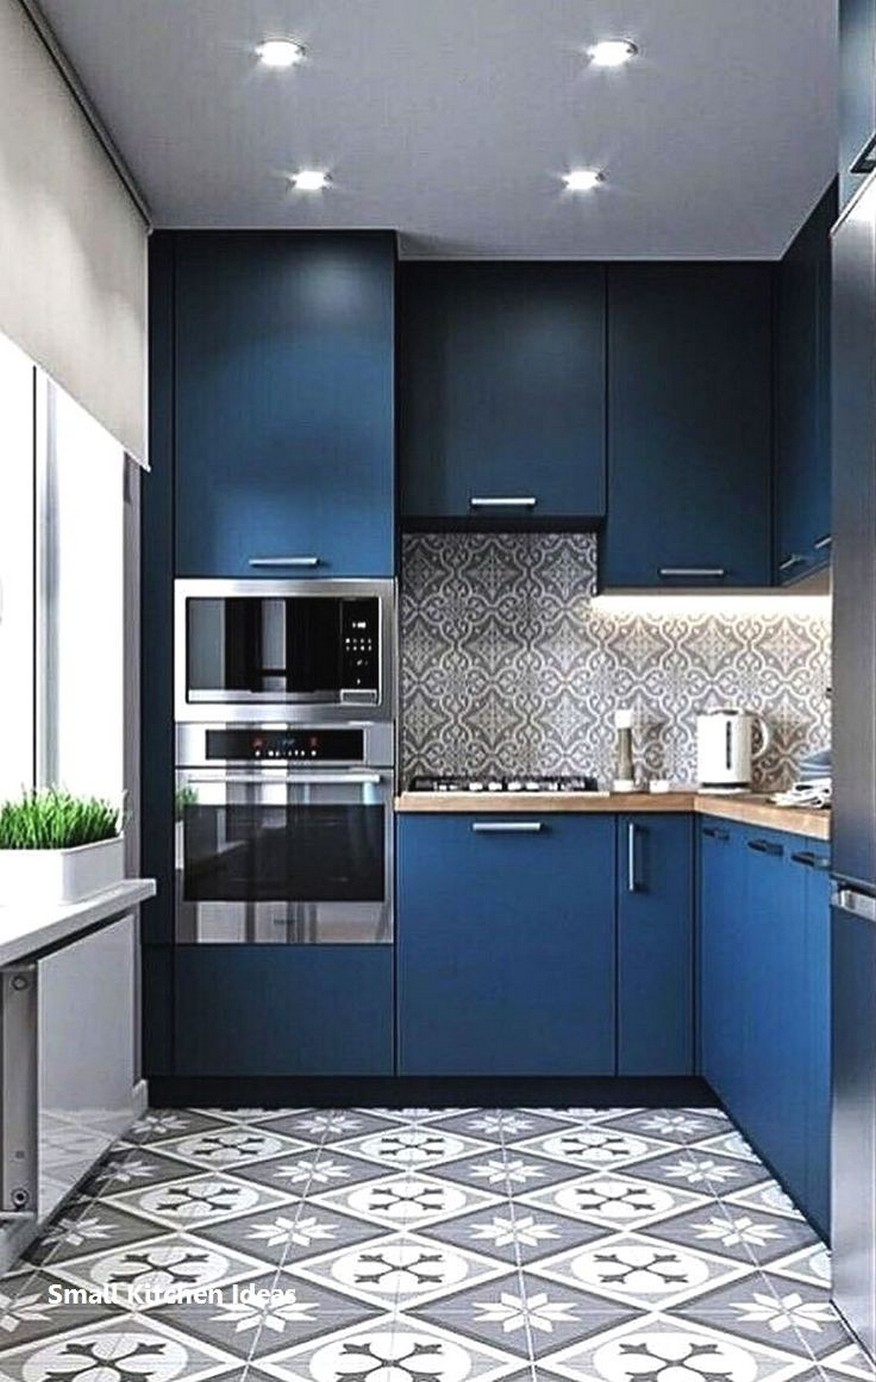 86 Some Small Kitchen Ideas To Help You Do Up Your Kitchen 30